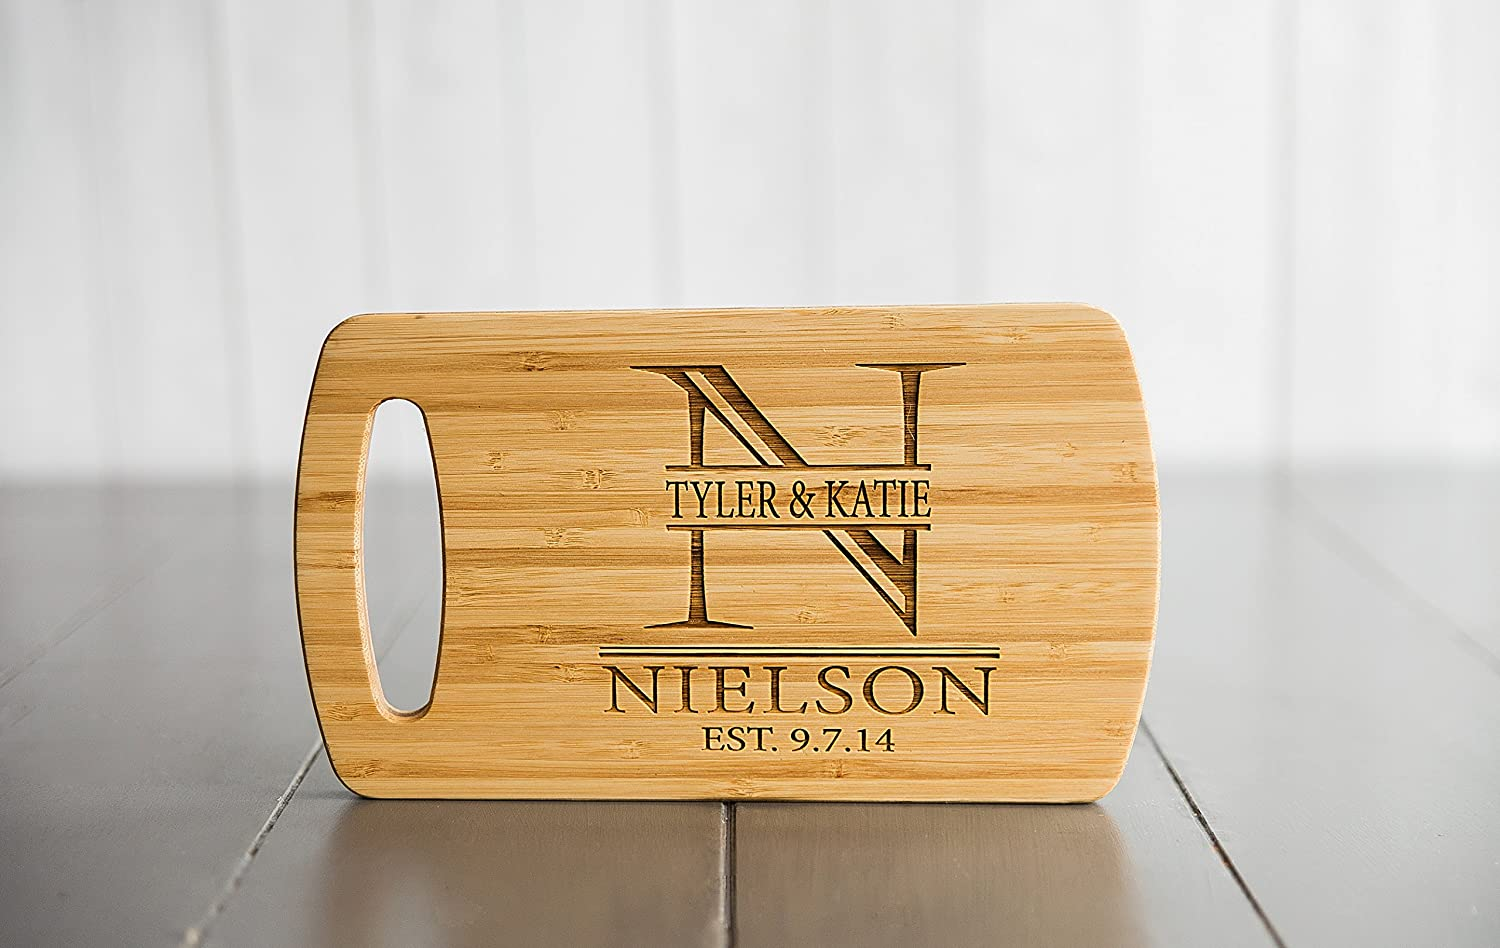 Qualtry - Personalized Mini Wood Cutting Boards - Perfect Gifts For Weddings, Bridal Showers, and Housewarmings - (5.5 x 9.5 Bamboo with Easy Carry Handle, Nielson Design)